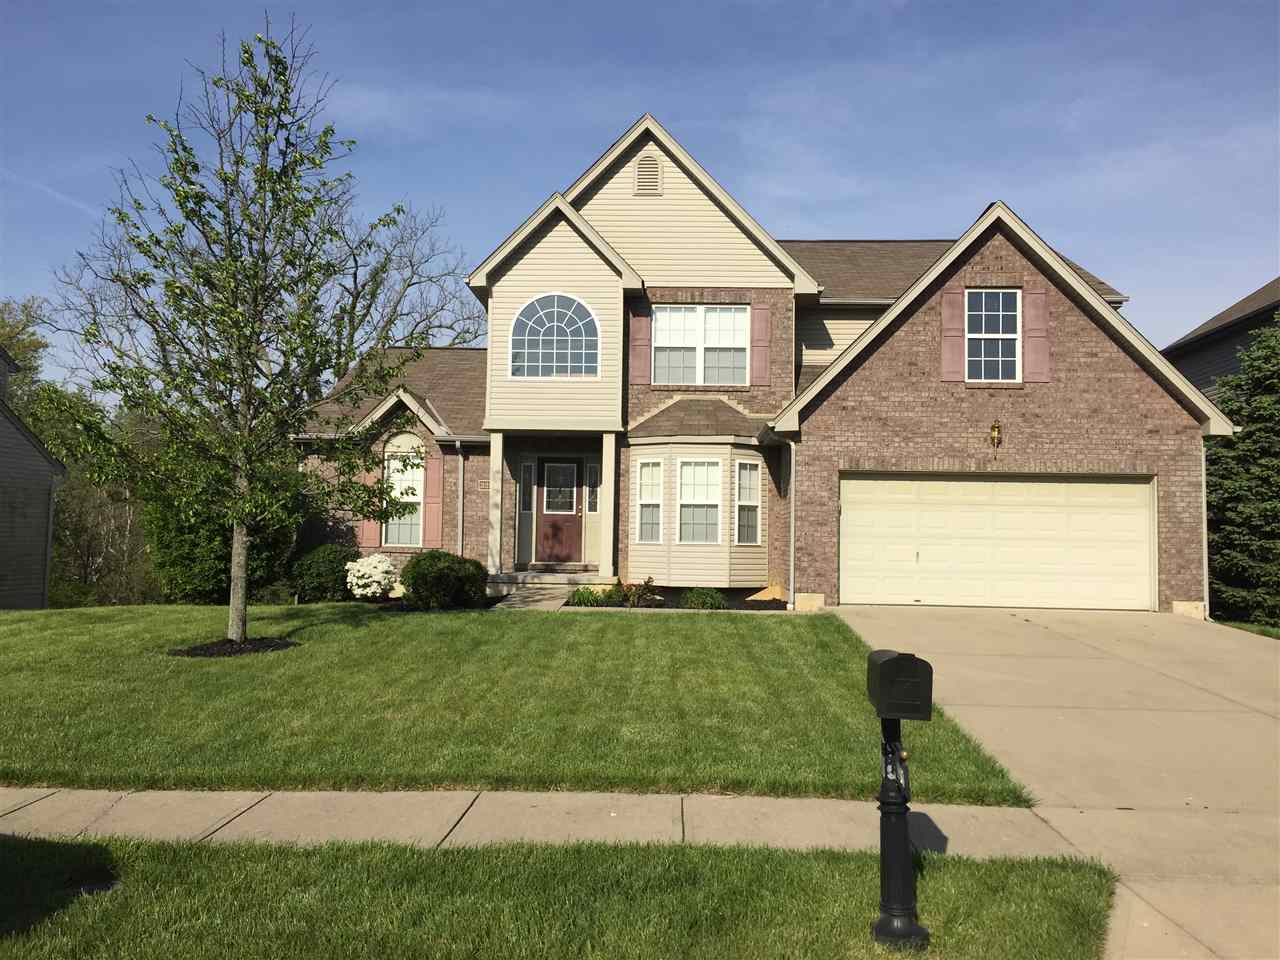 Photo 1 for 3228 Mitchell Ct Burlington, KY 41005